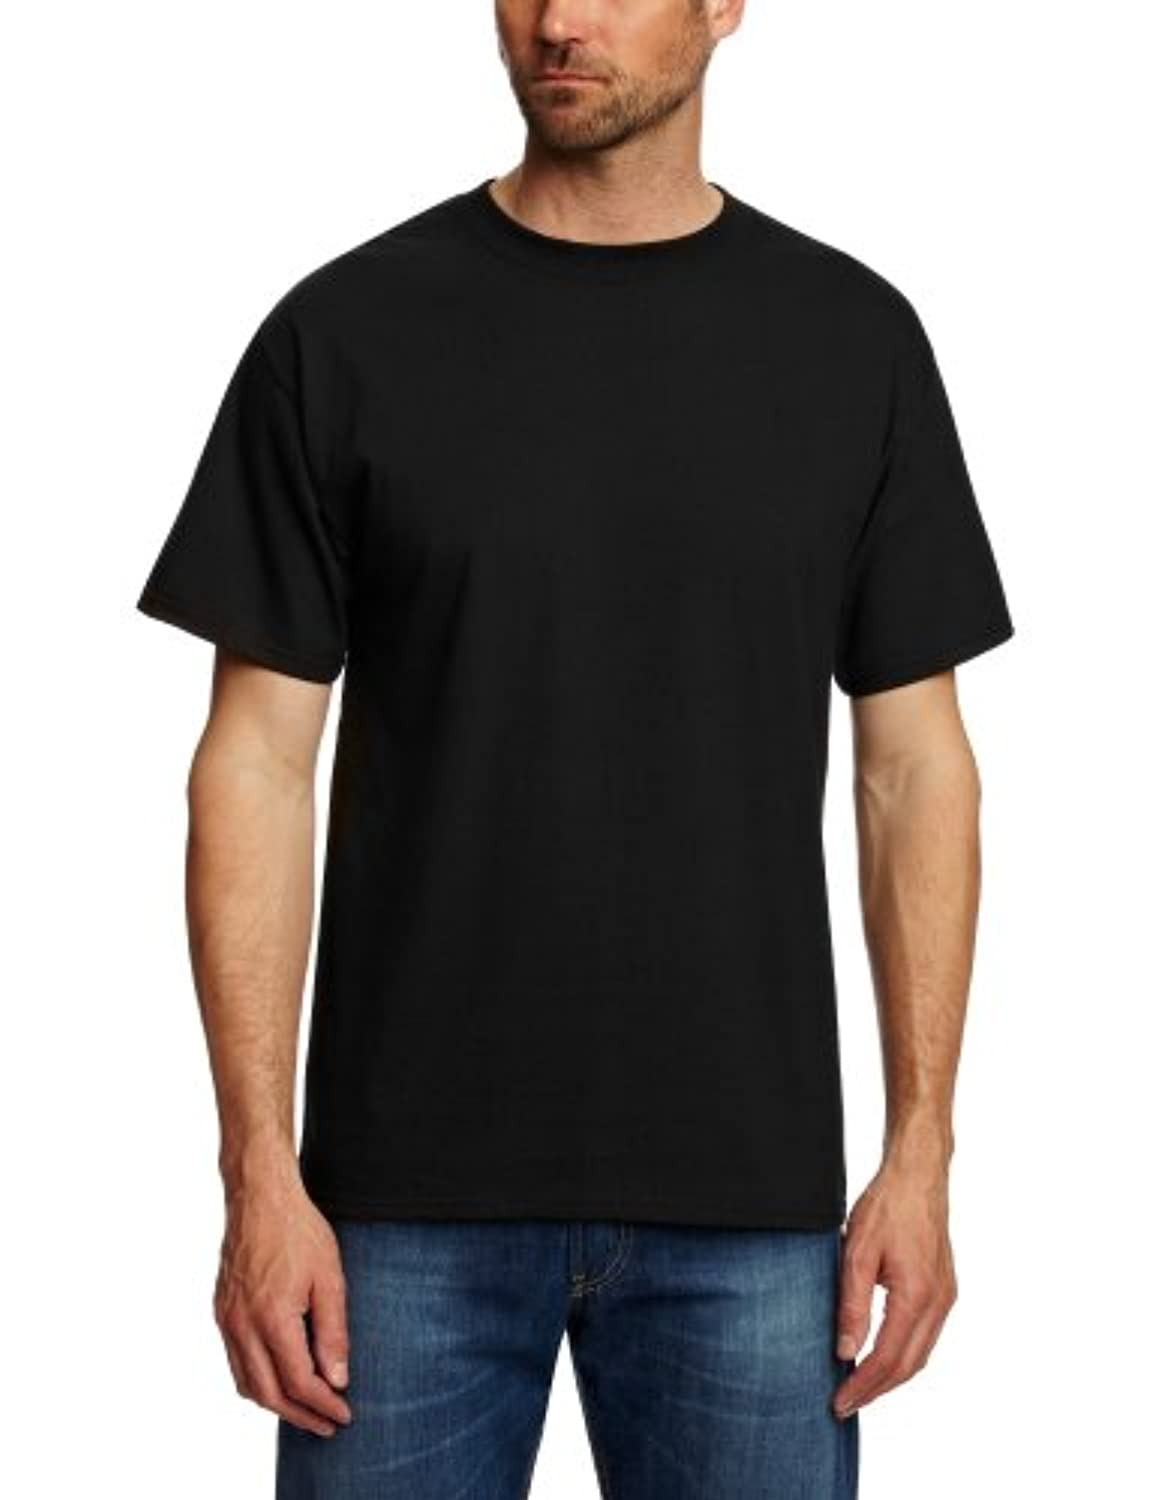 Hanes black t shirts xxl -  Hanes Mens Tagless Beefy Super Heavy Weight T Shirt Xxl Black